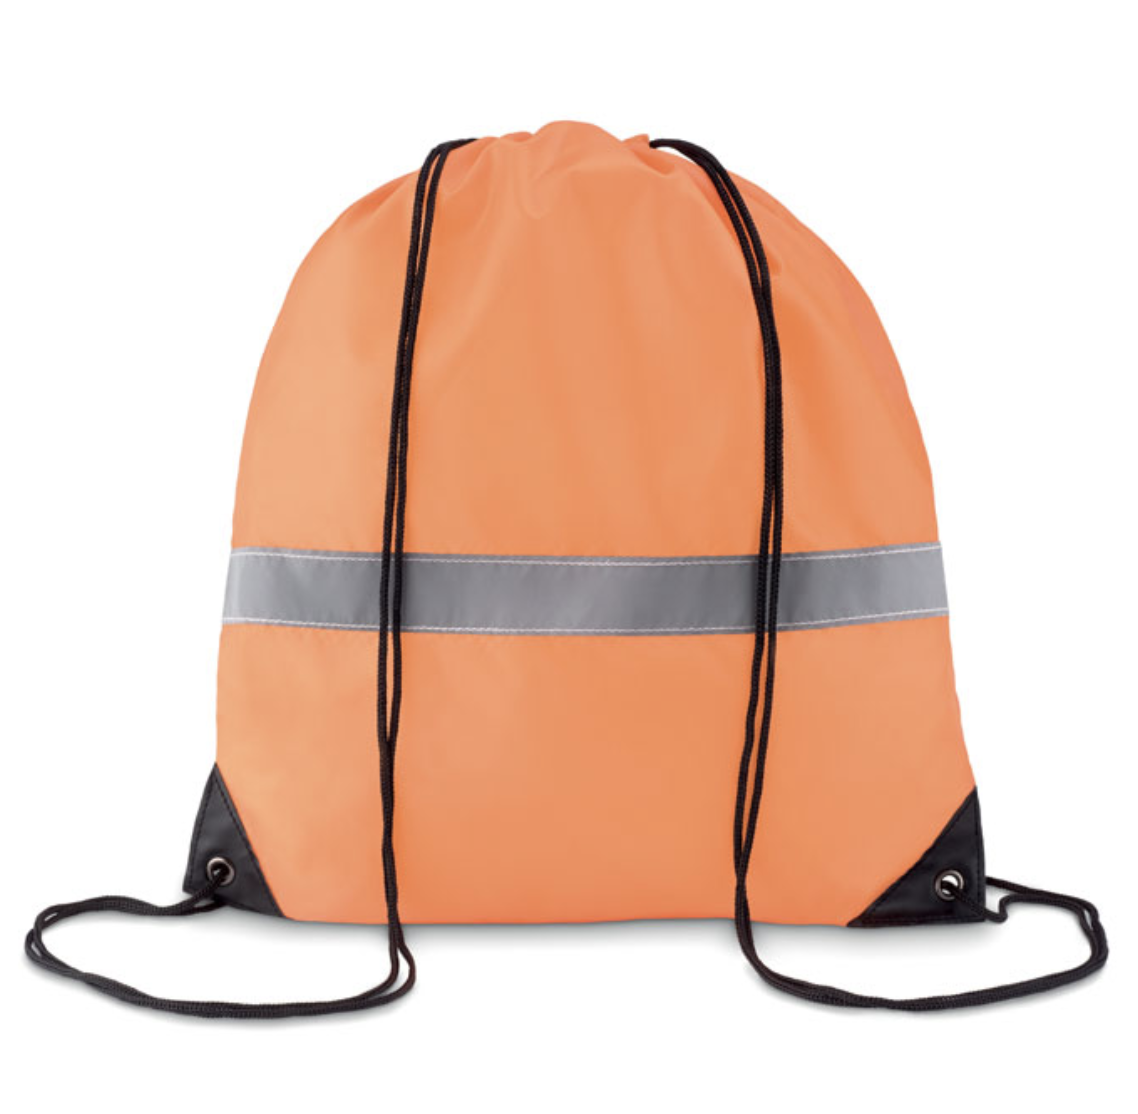 Drawstring bag in 190T polyester with reflective stripe.